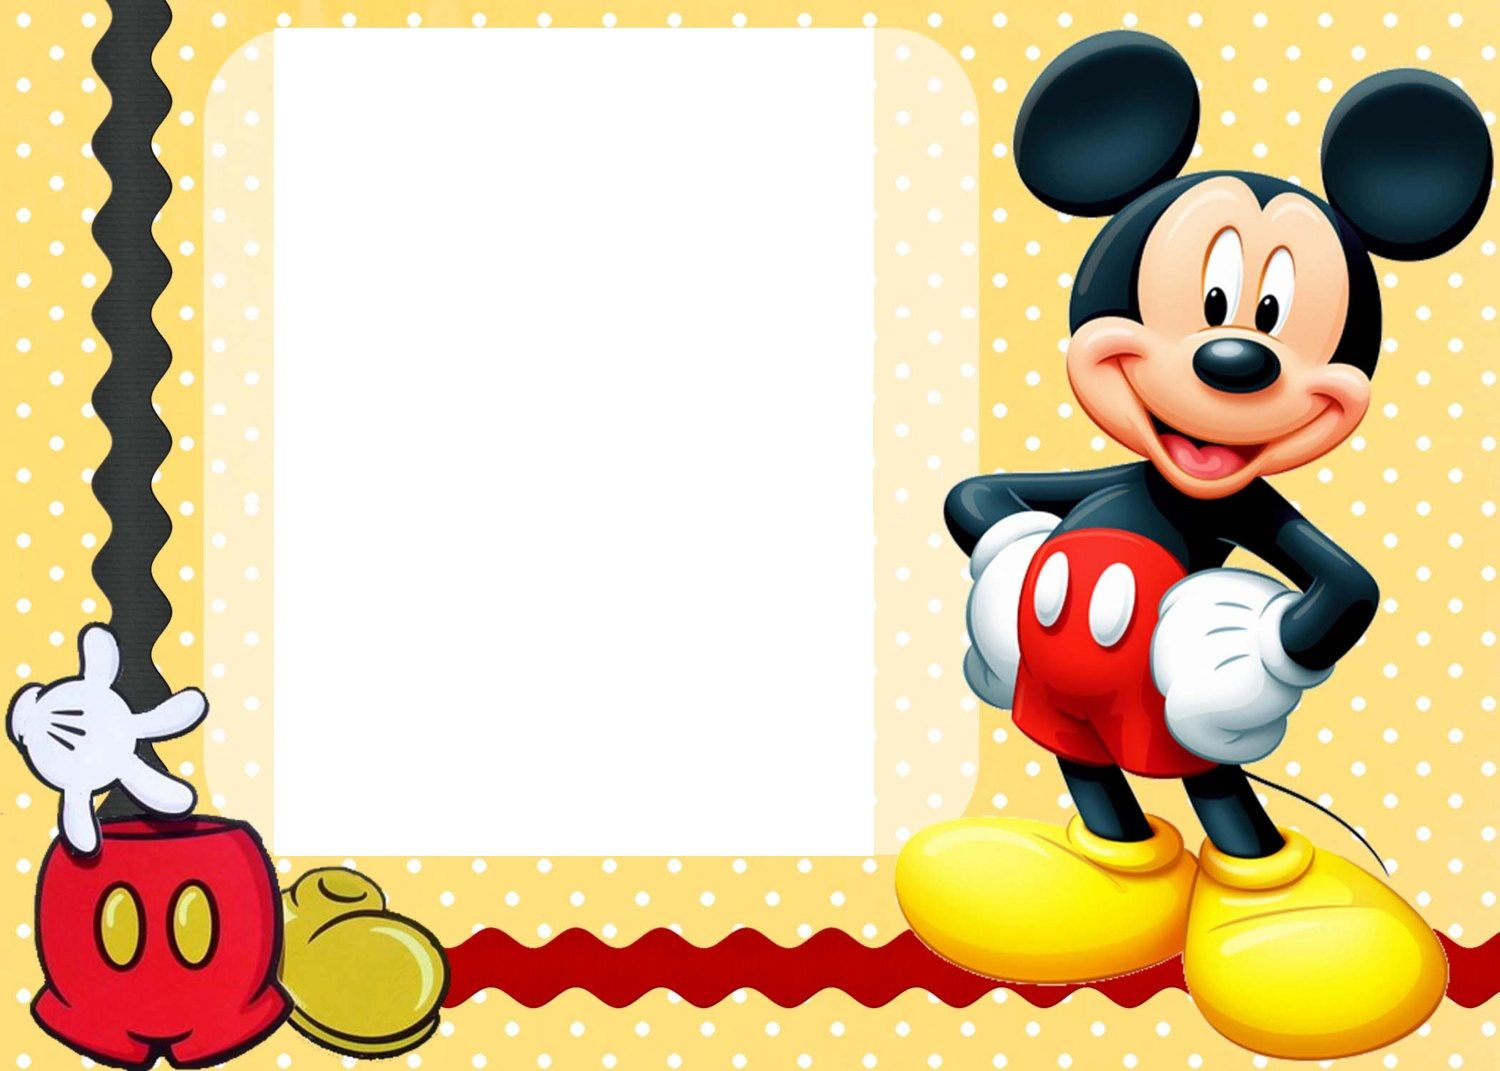 Mickey Mouse Clubhouse Invitation Template Free Download – Mickey Mouse Invitation Template